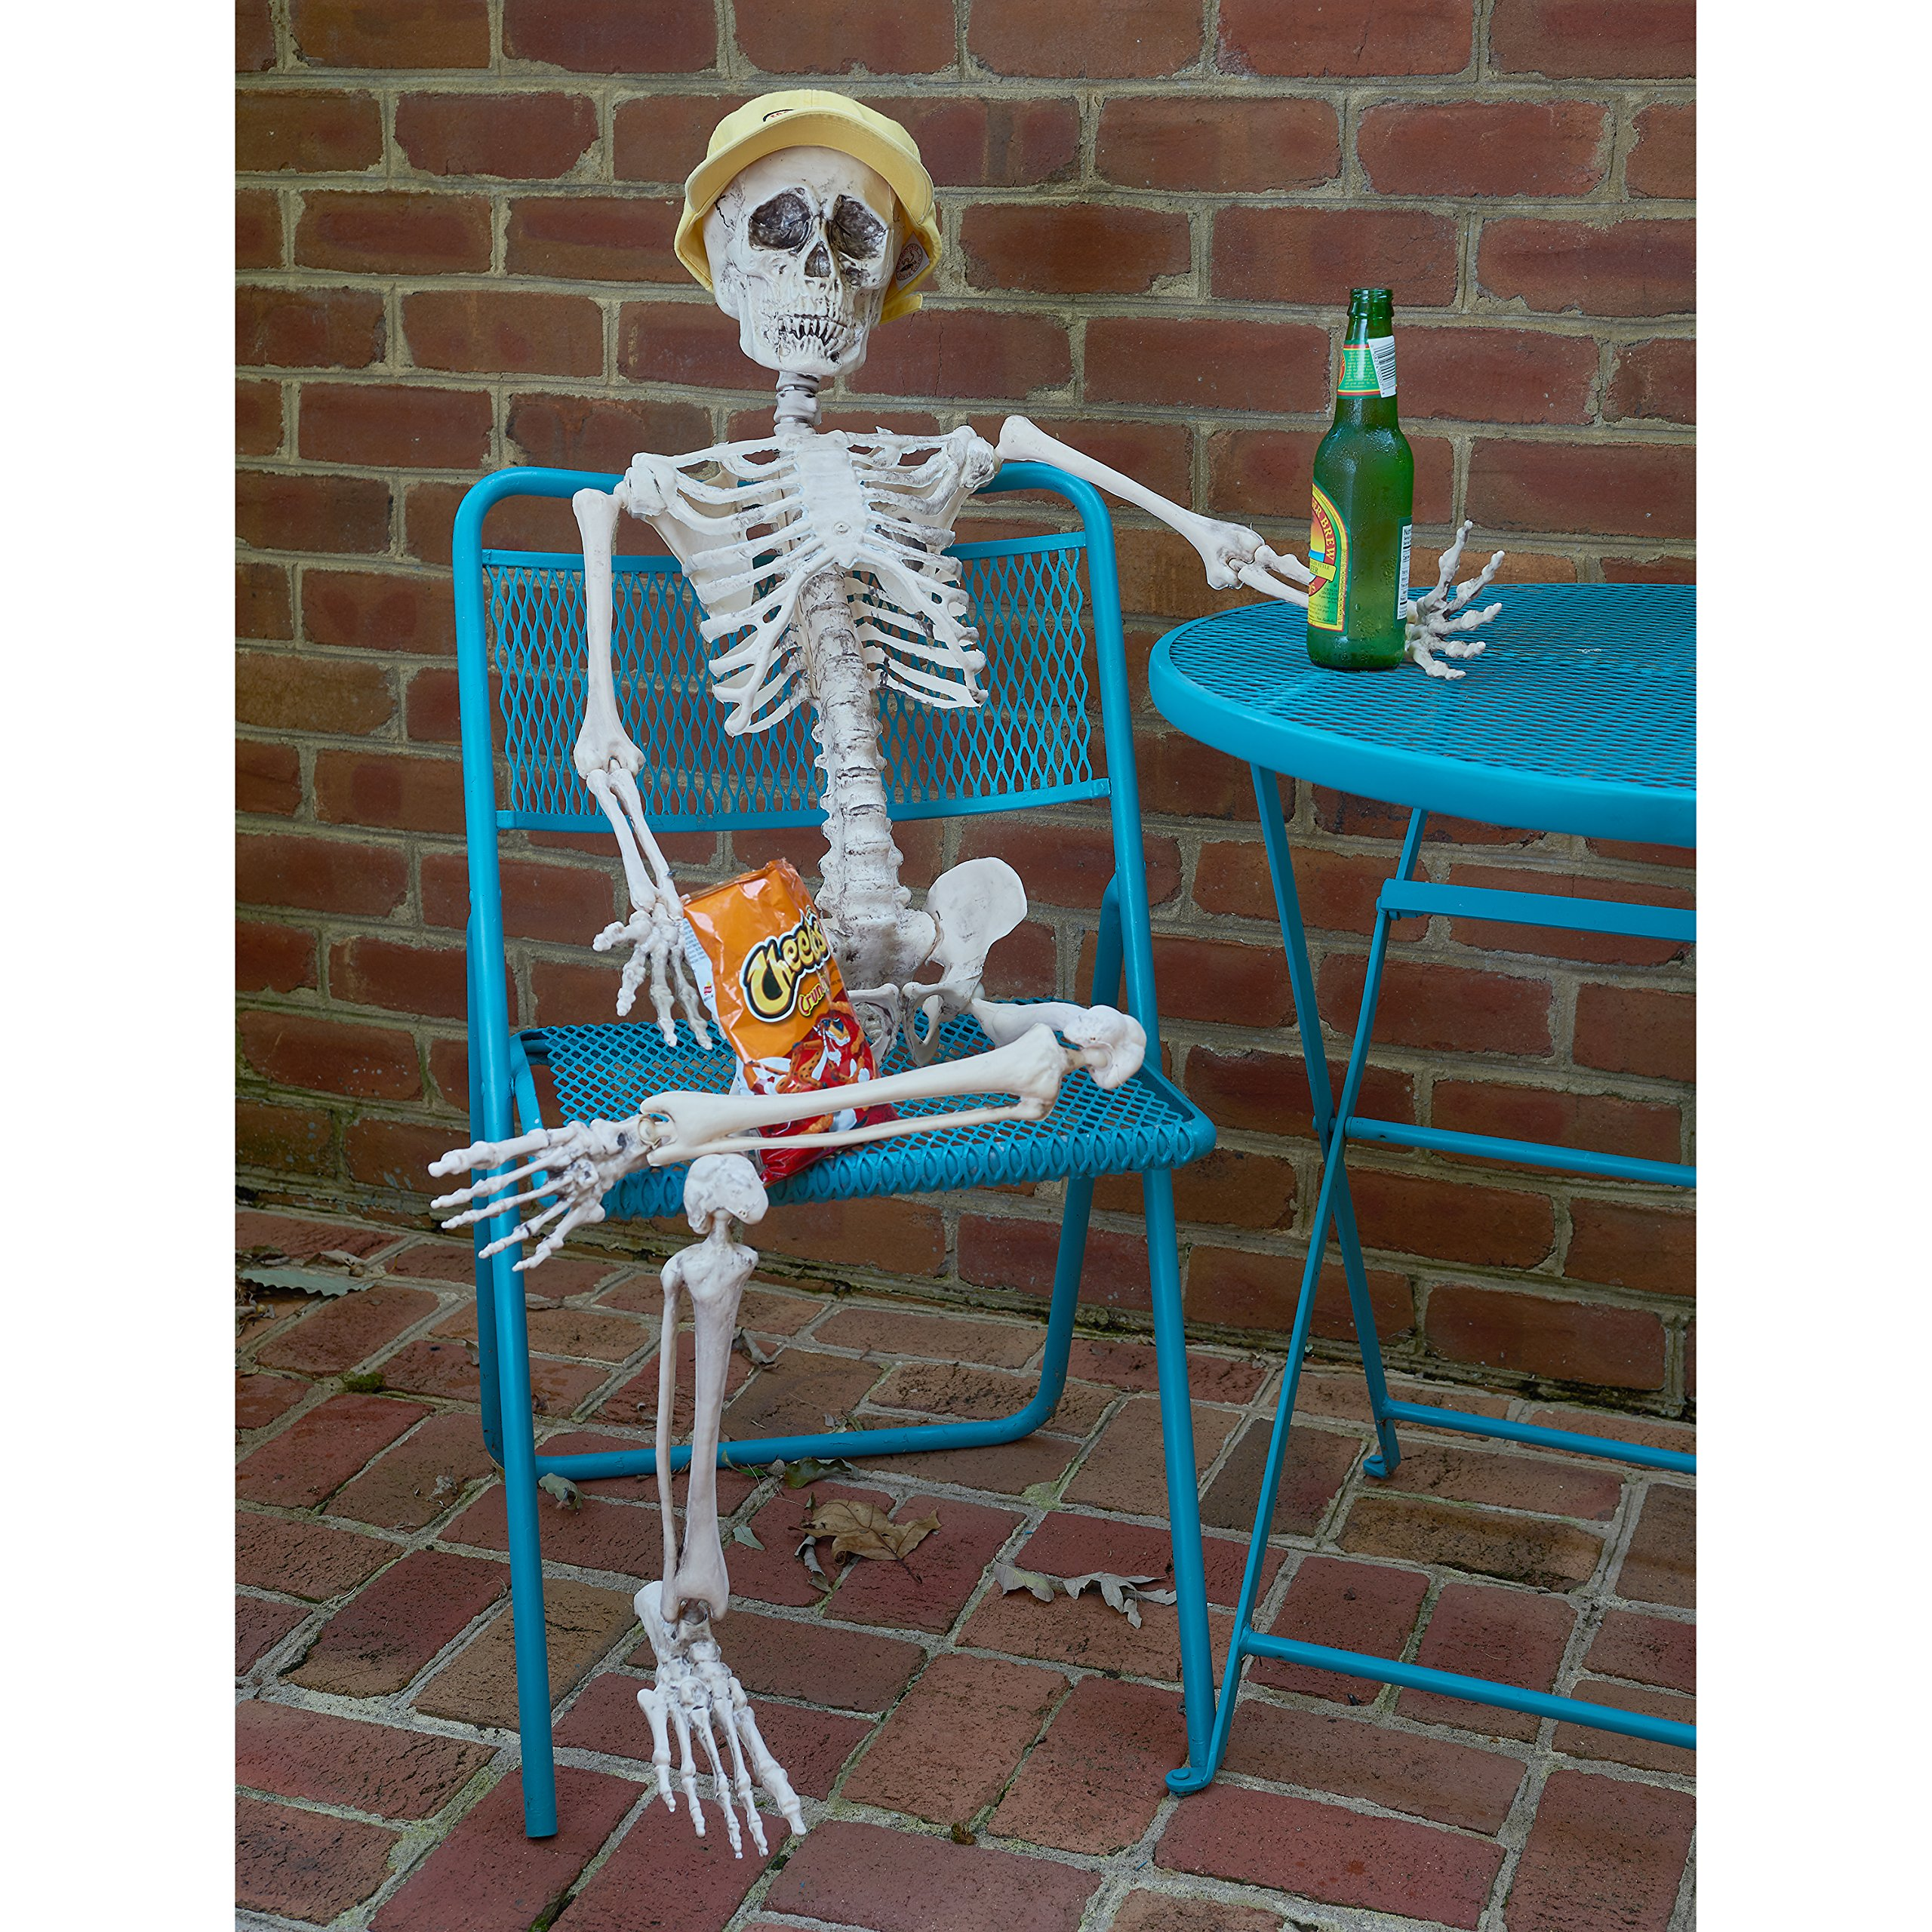 Prextex Tall Posable Halloween Skeleton- Full Body Halloween Skeleton with Movable /Posable Joints for Best Halloween Decoration